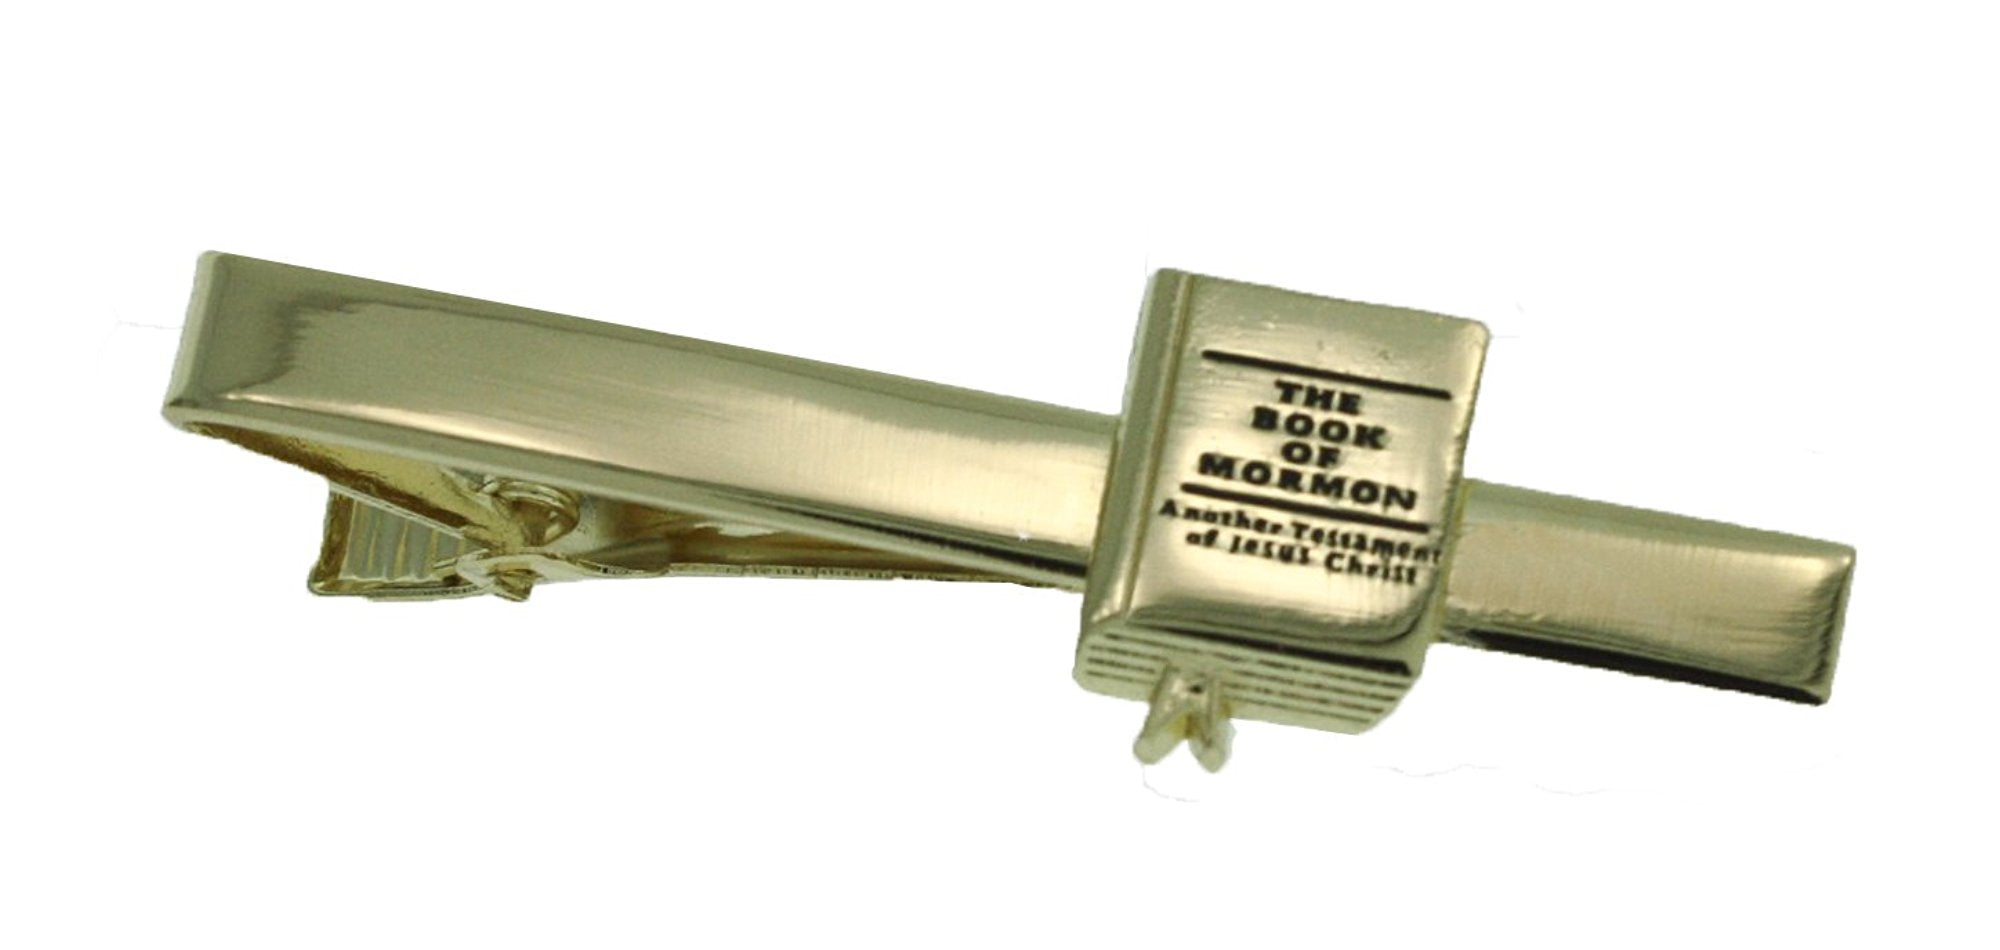 One Moment In Time J9TB LDS CTR Sunstone Silver Tone Tie Bar Alloy